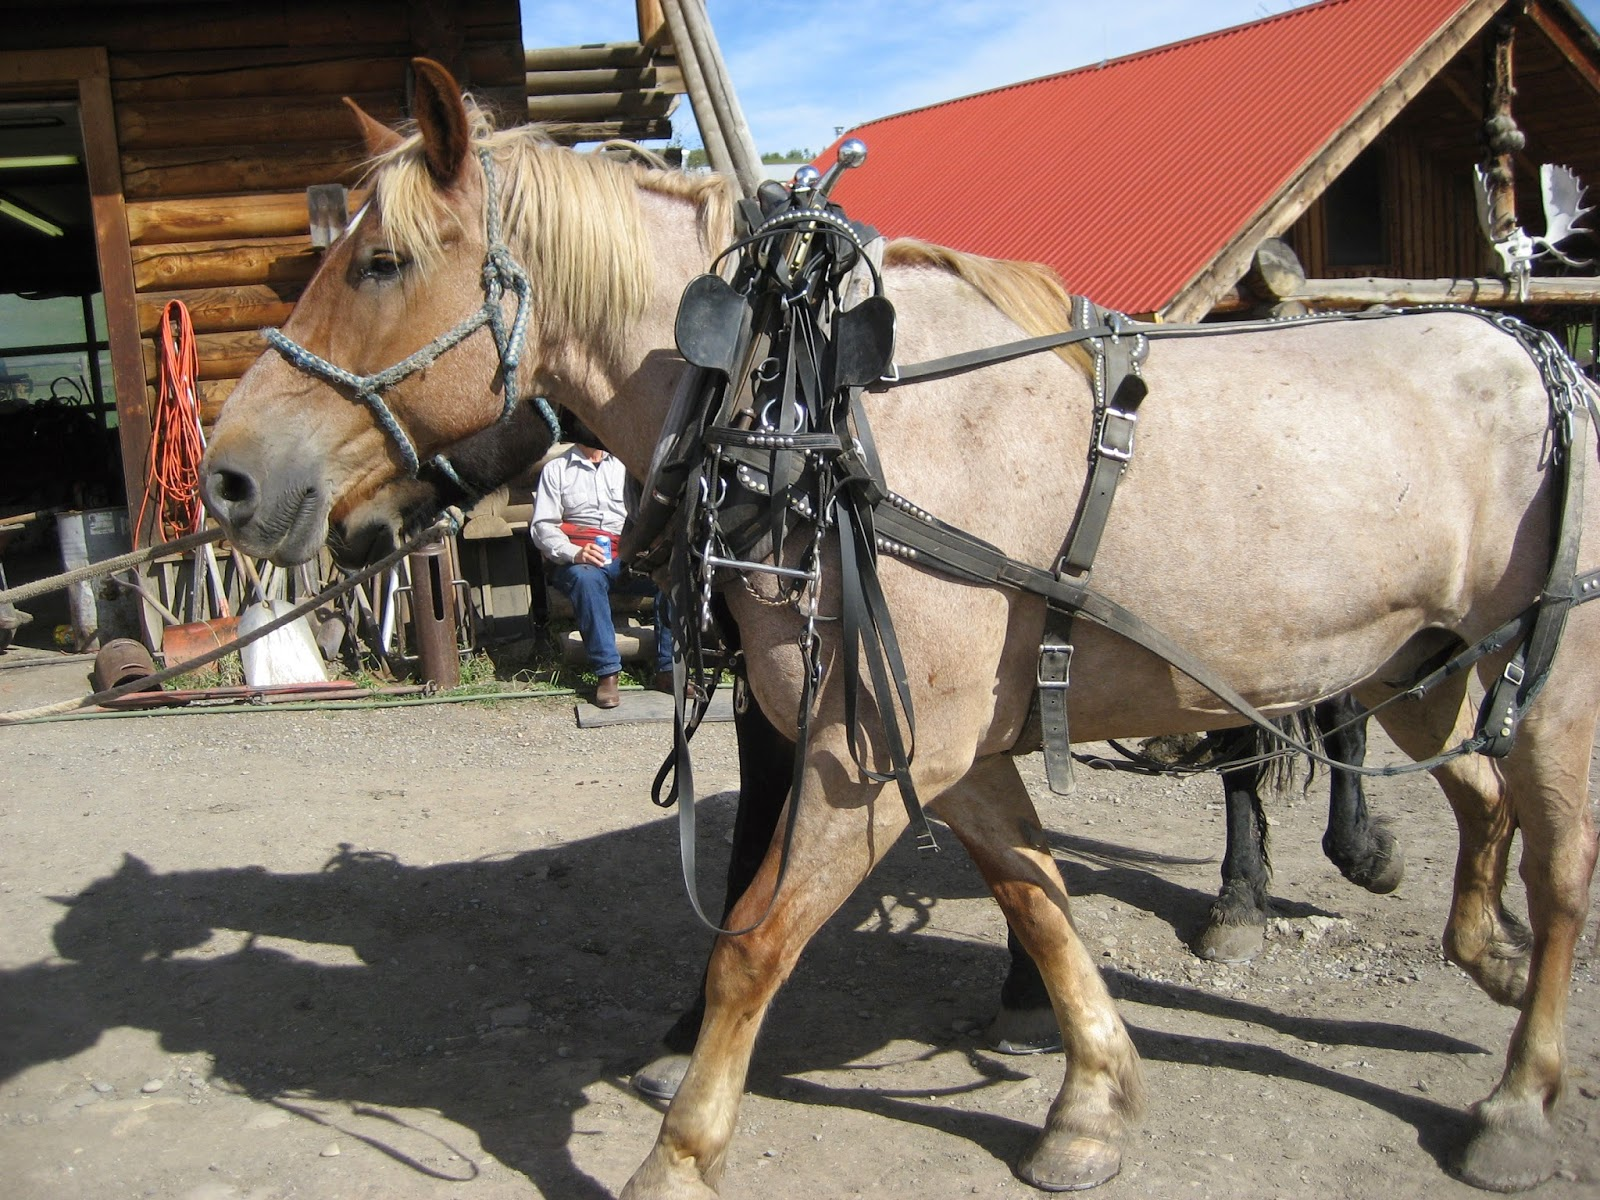 Do Horses Neigh When They Run?: What is hardware?